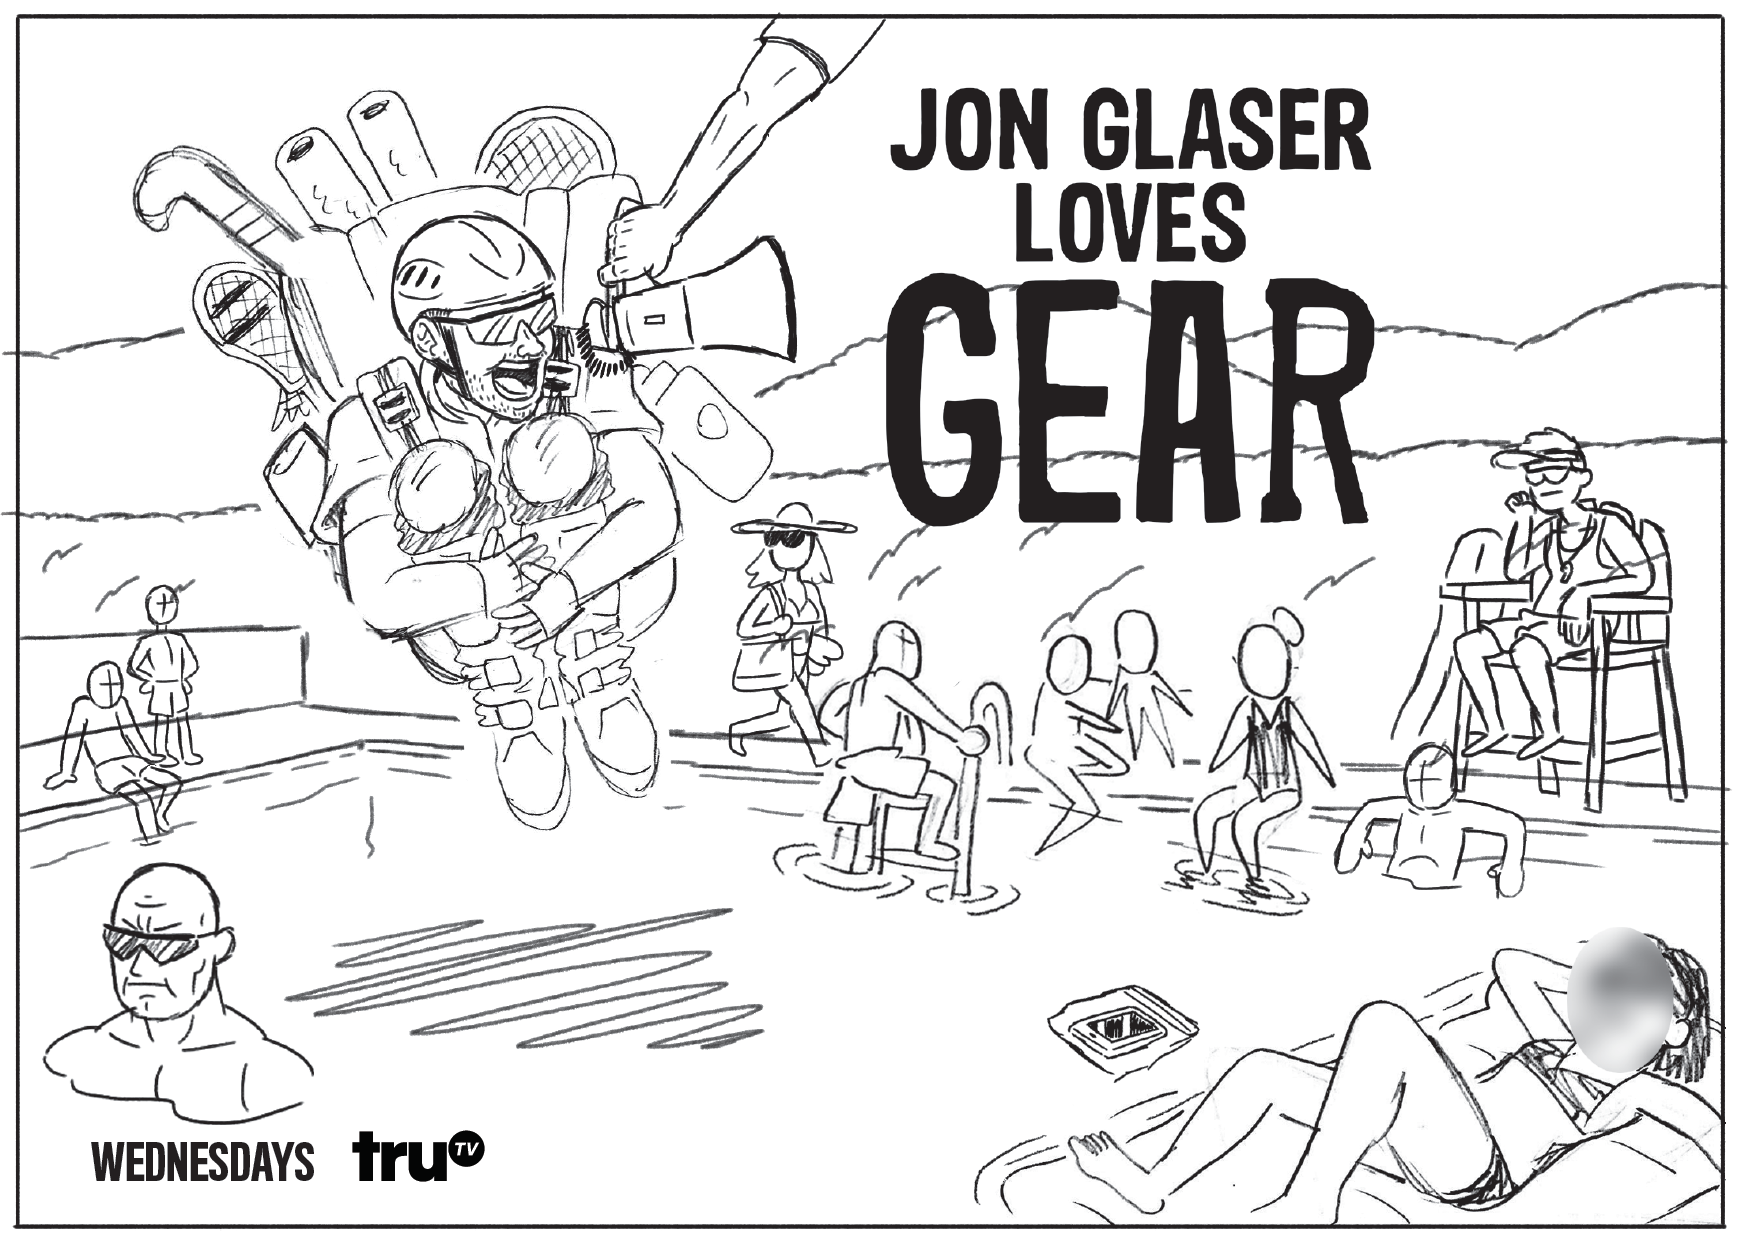 Jon Glaser Loves Gear Key Art Concepts - Tasked with sketching different concepts for show key art. Final art (below) used on subway two-sheets and billboards to advertise the show.